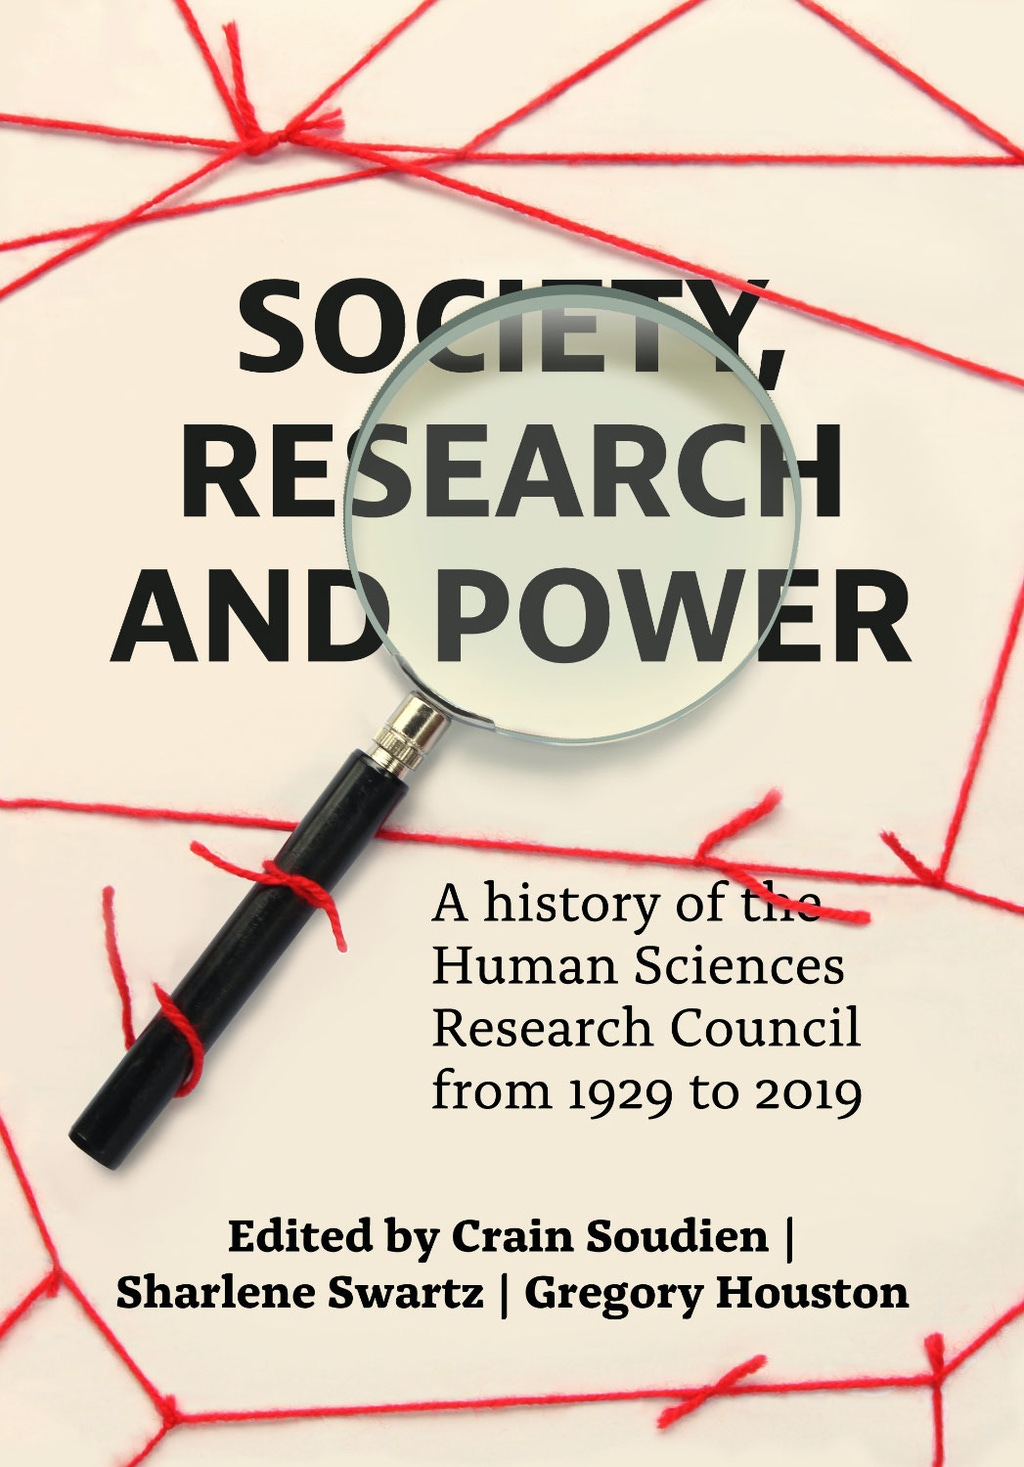 Society Research And Power Cover 5 Inch 2021 03 24 Rgb